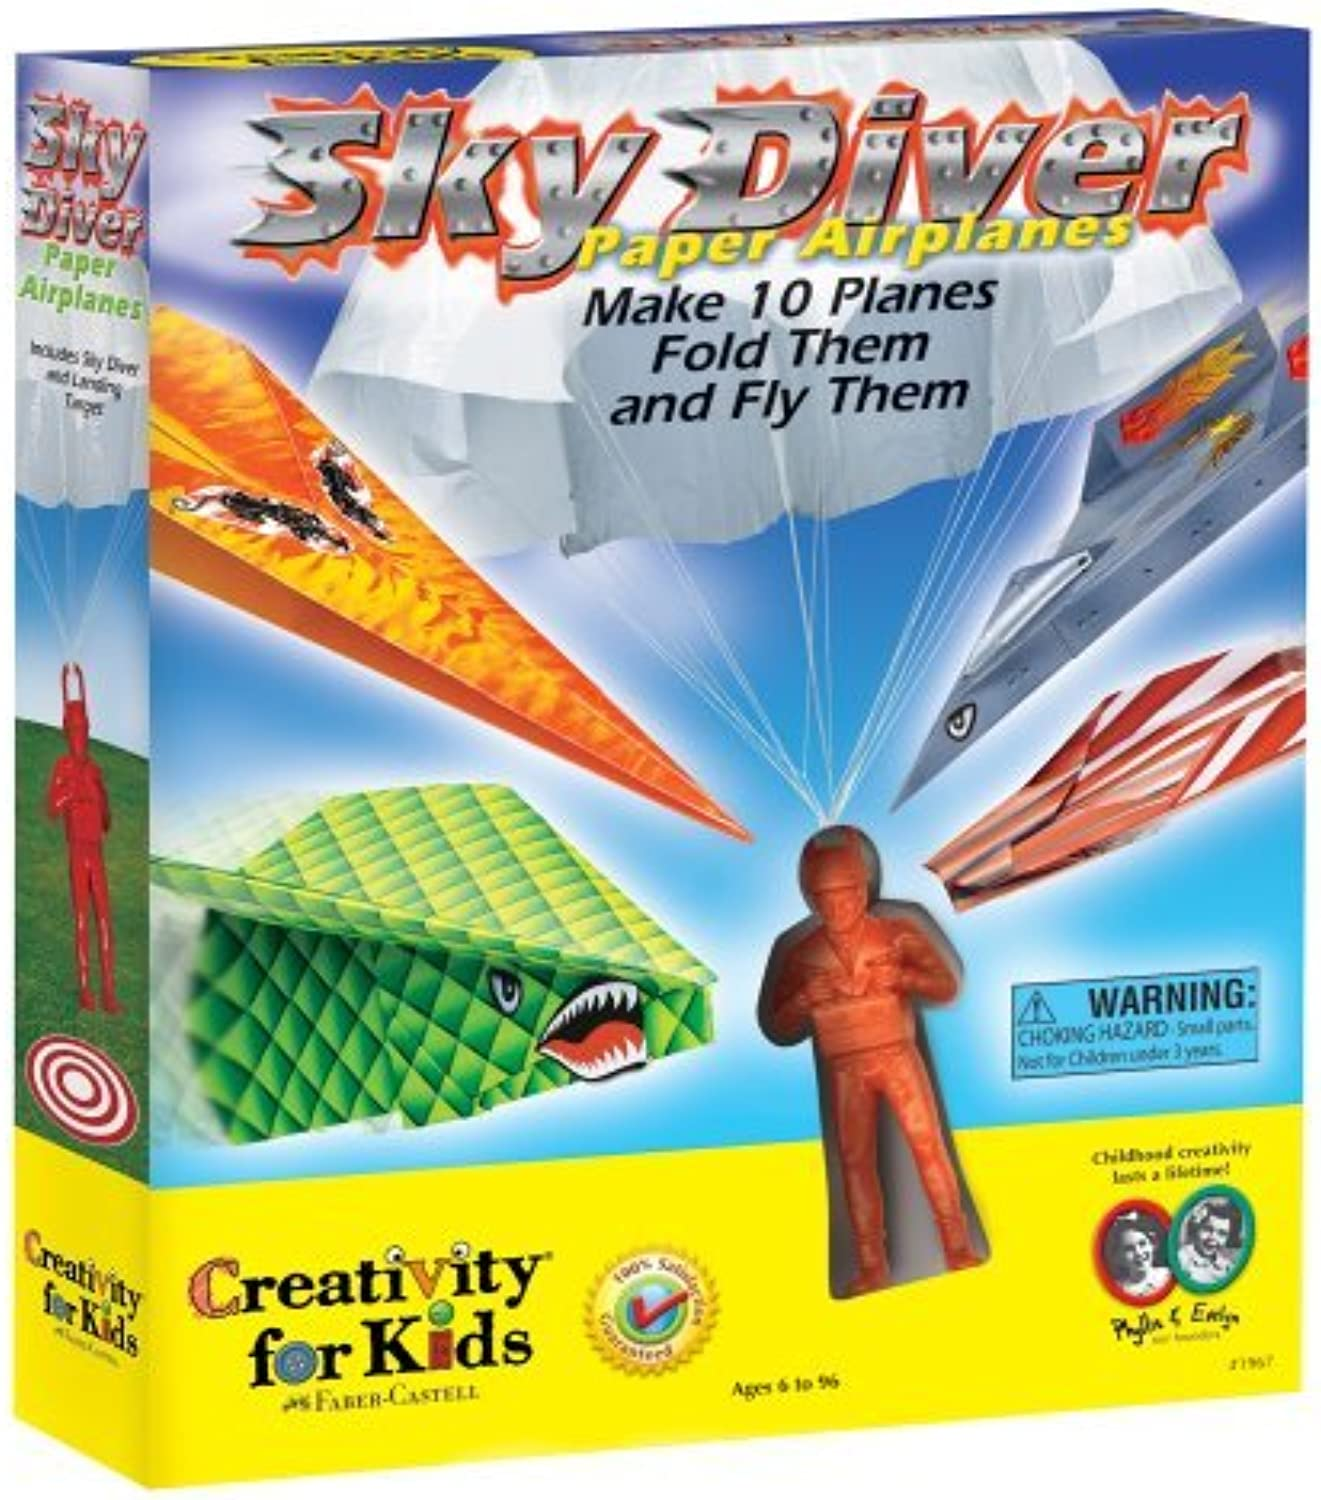 Creativity for Kids Sky Diver Paper Airplanes by Creativity for Kids